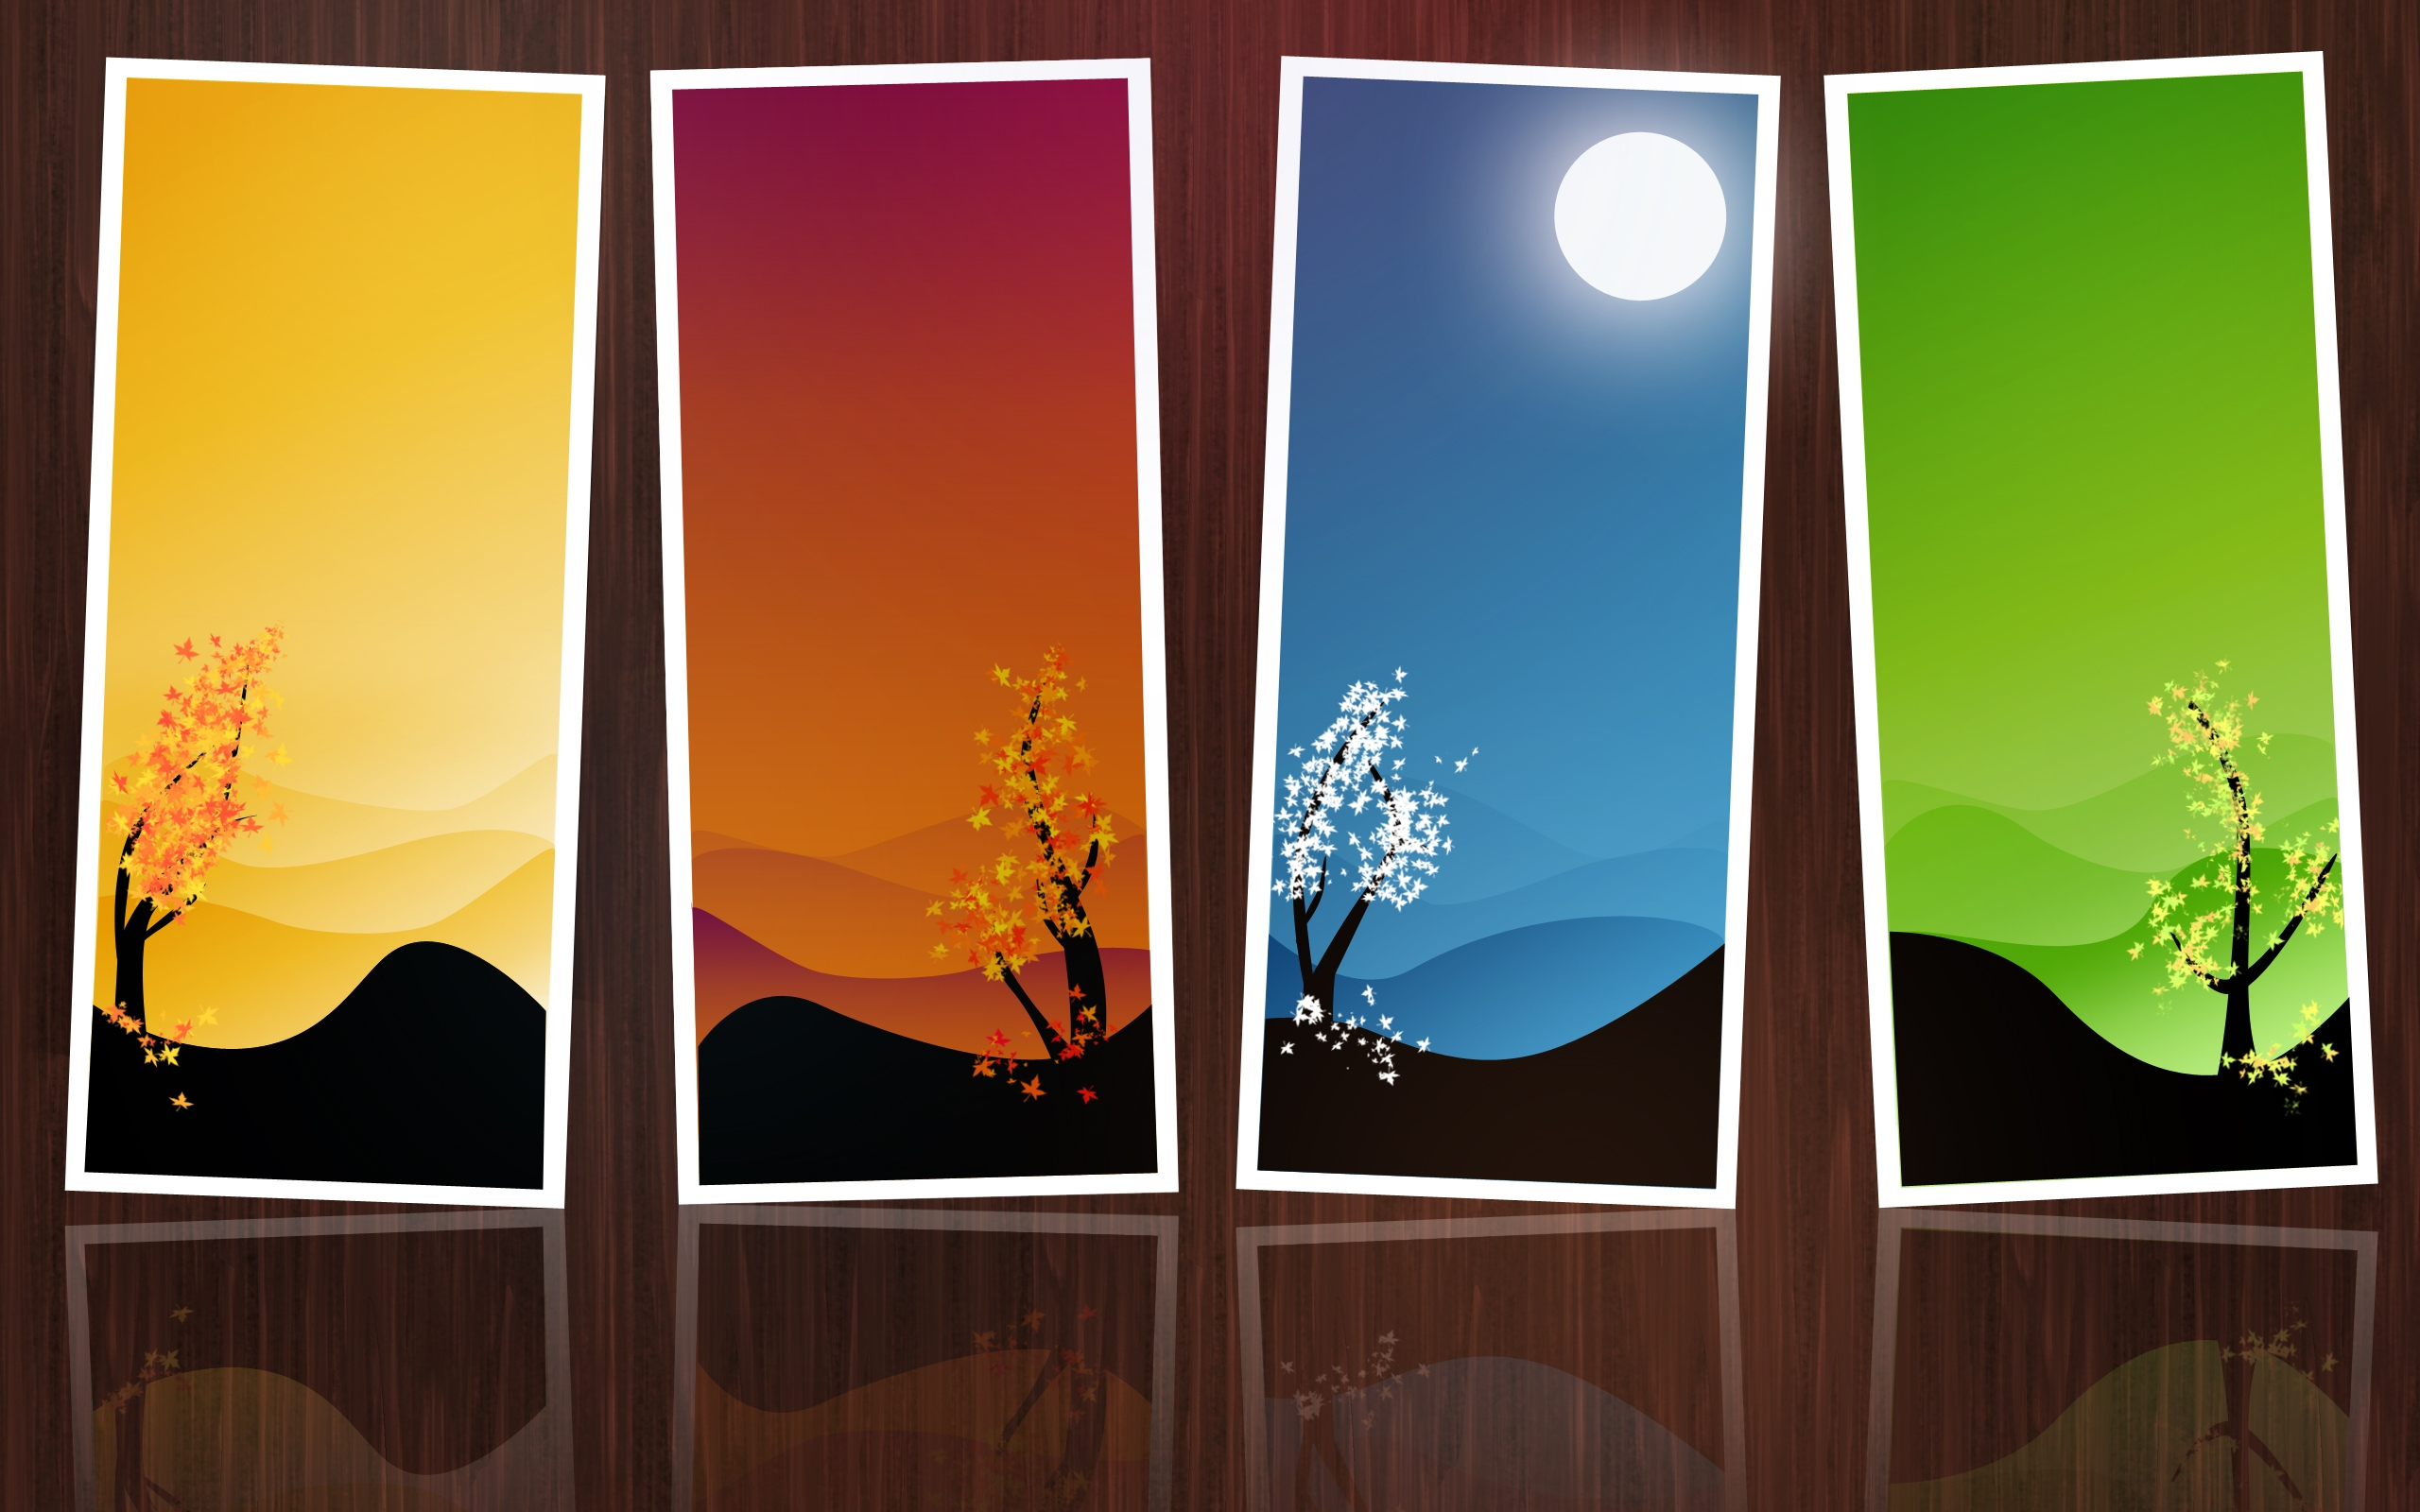 4 Seasons Wallpaper